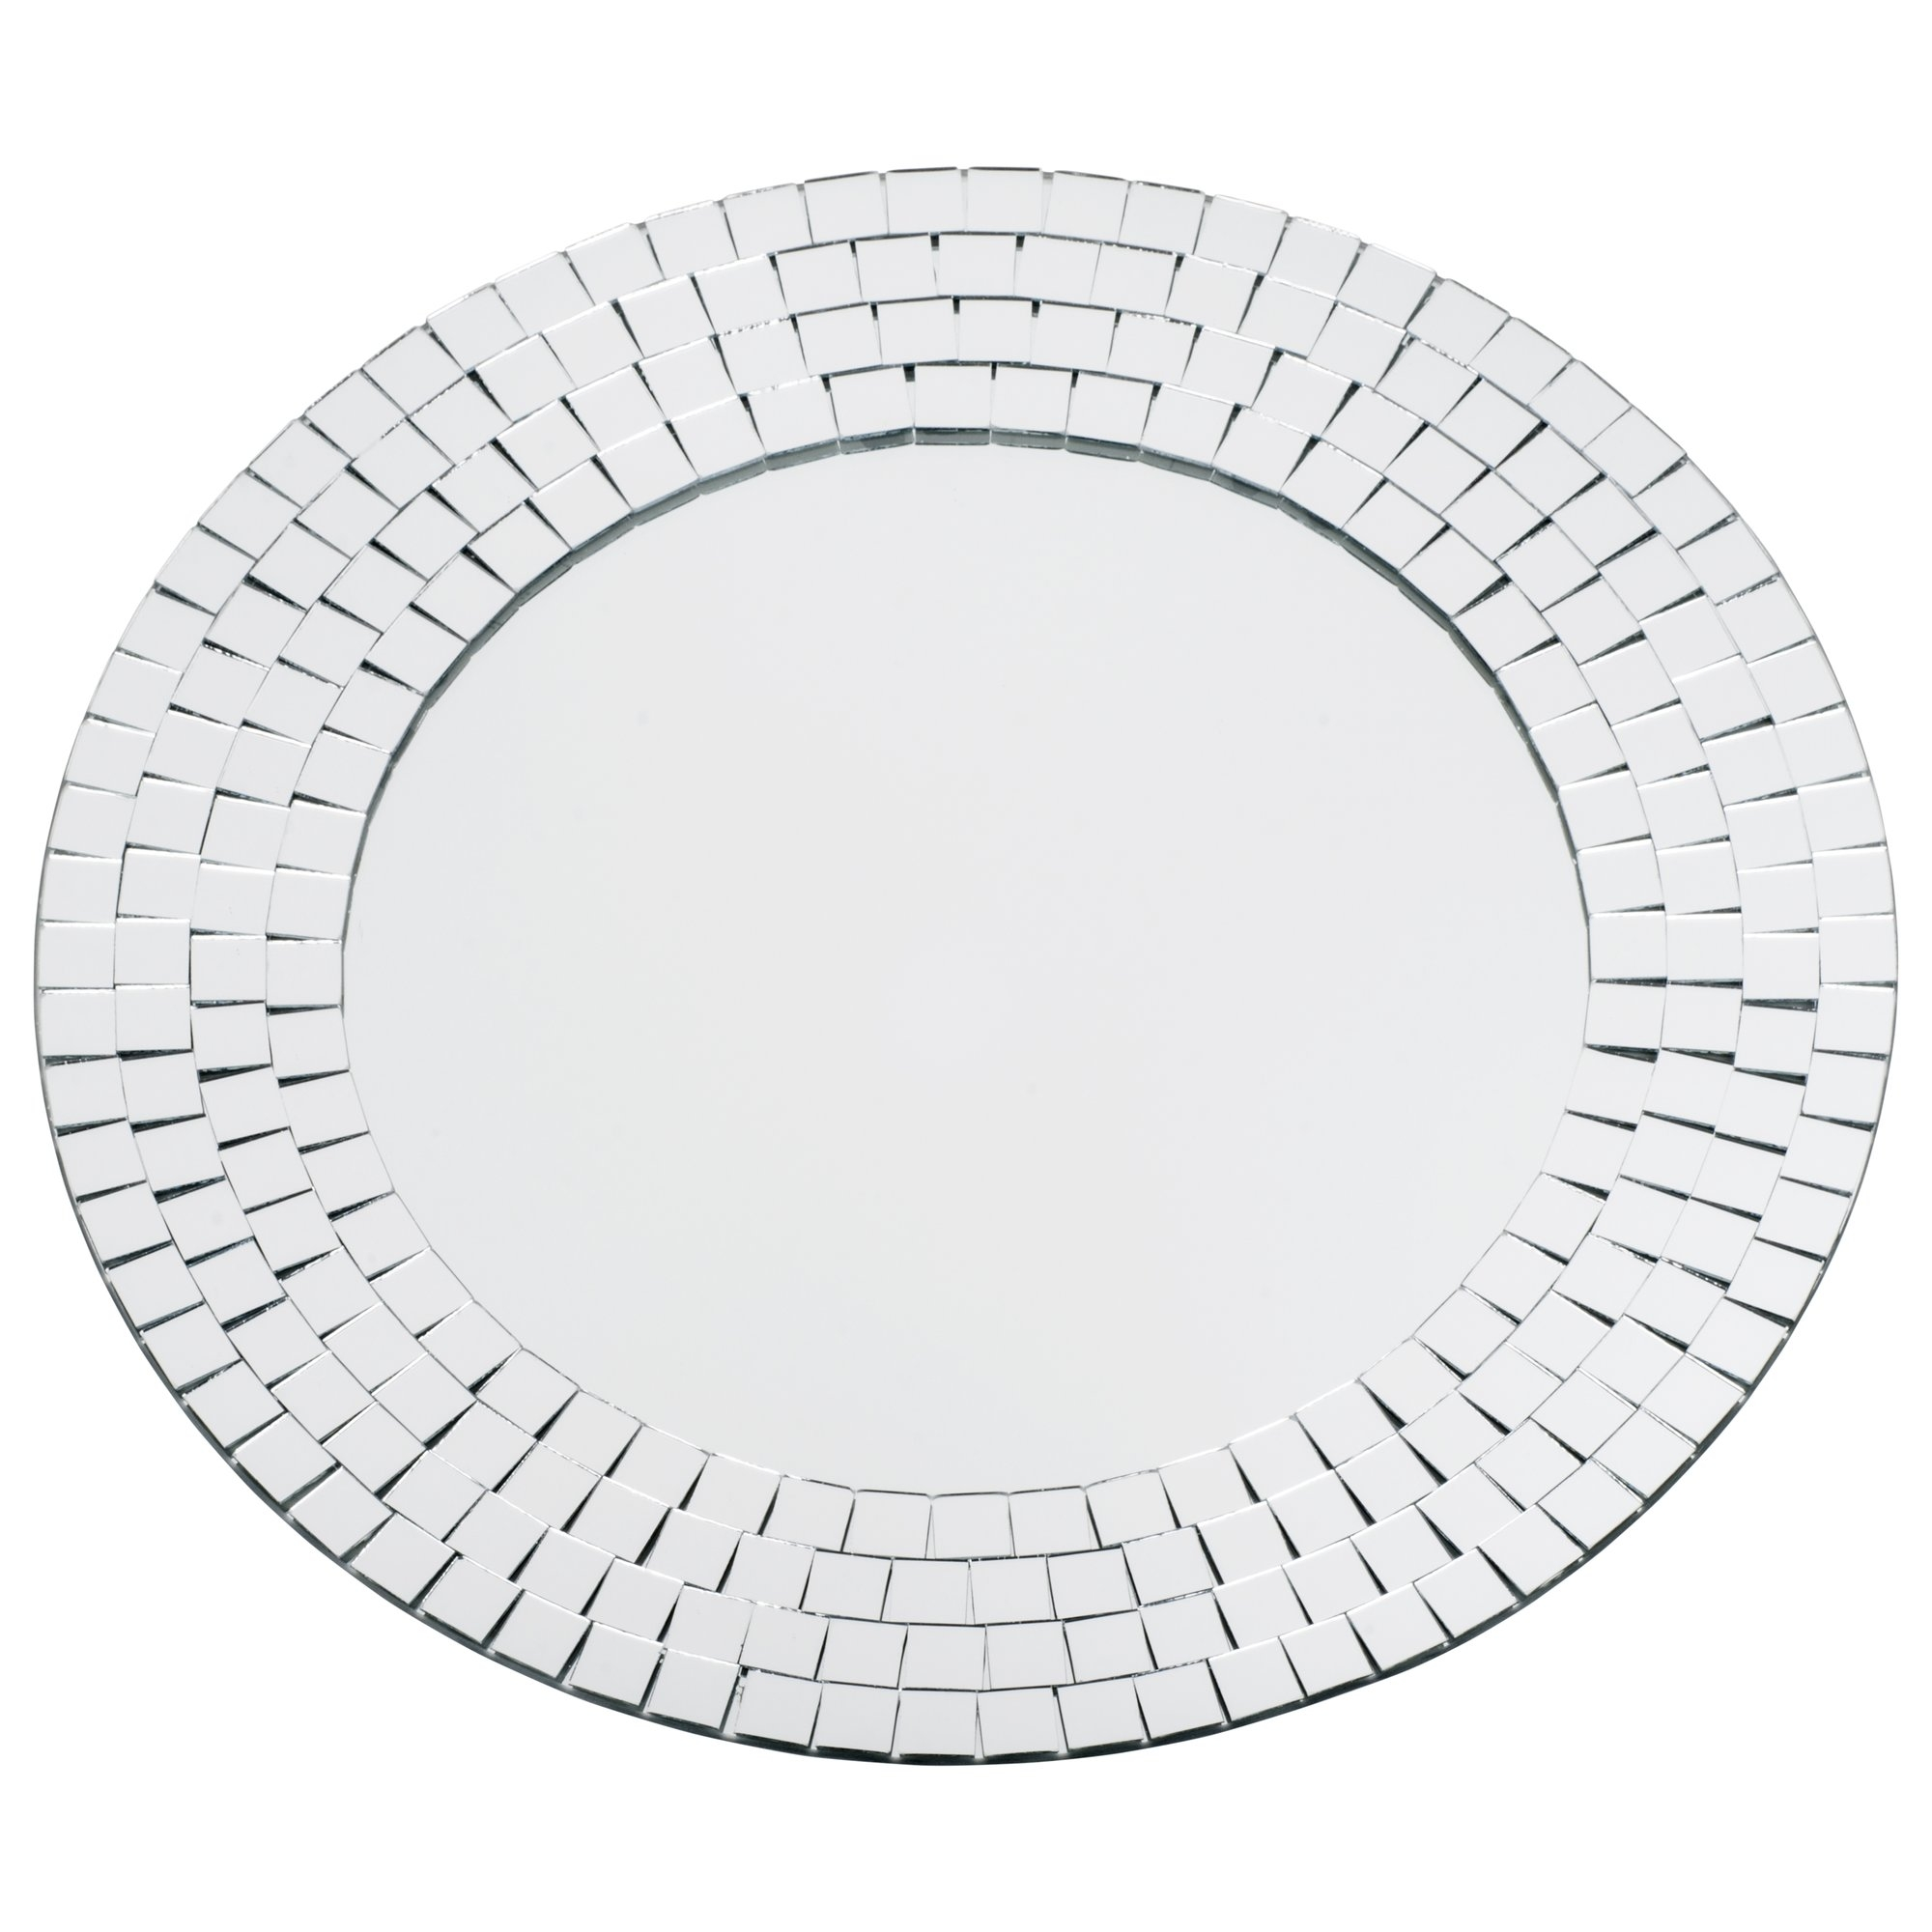 15 ideas of round mosaic wall mirror mirror ideas latitude run round crystals glass mosaic wall mirror reviews in round mosaic wall mirror image amipublicfo Image collections